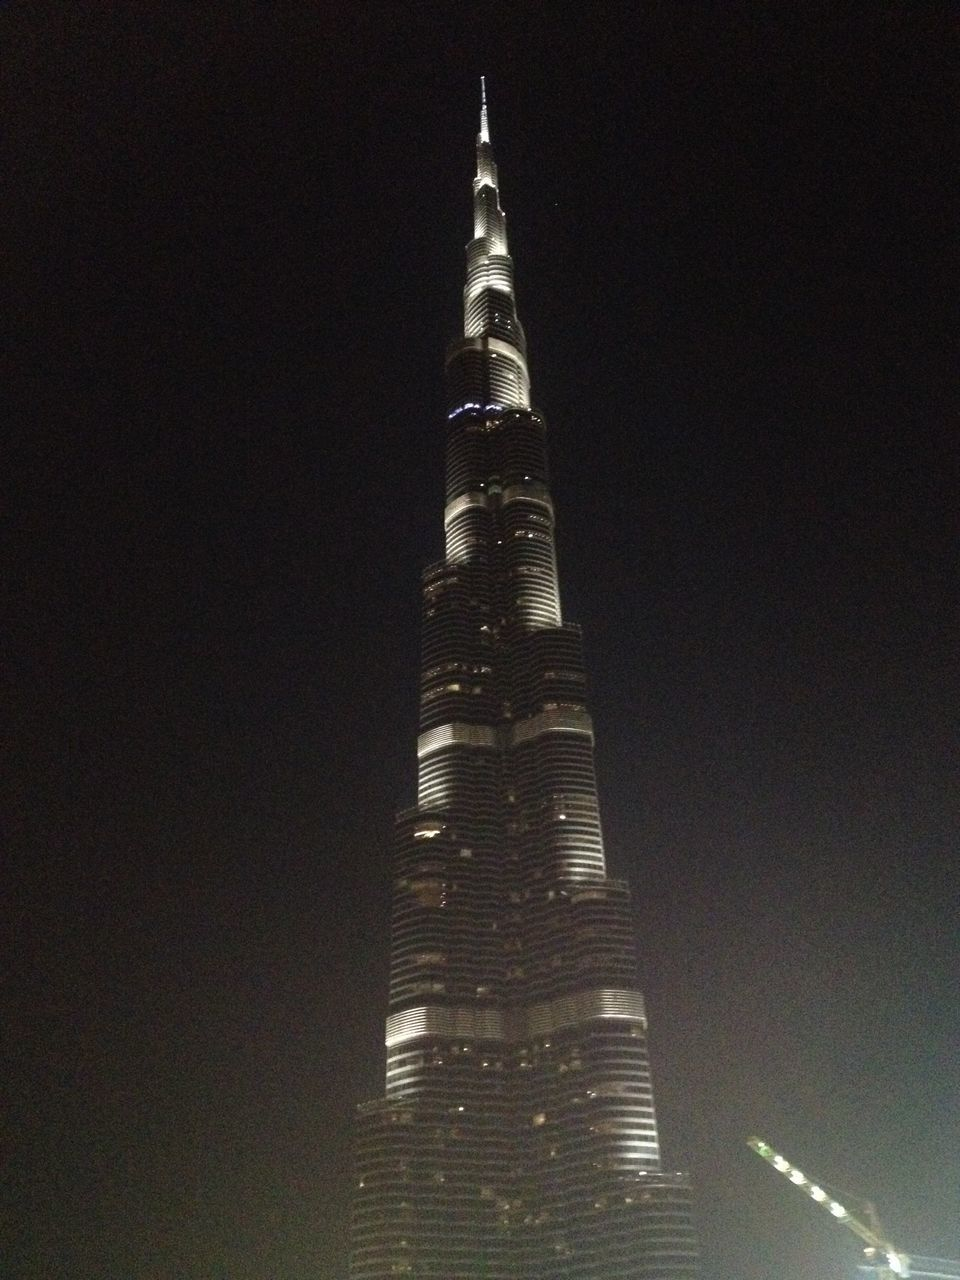 tall - high, architecture, low angle view, night, tower, travel destinations, travel, modern, tourism, built structure, skyscraper, illuminated, building exterior, no people, sky, outdoors